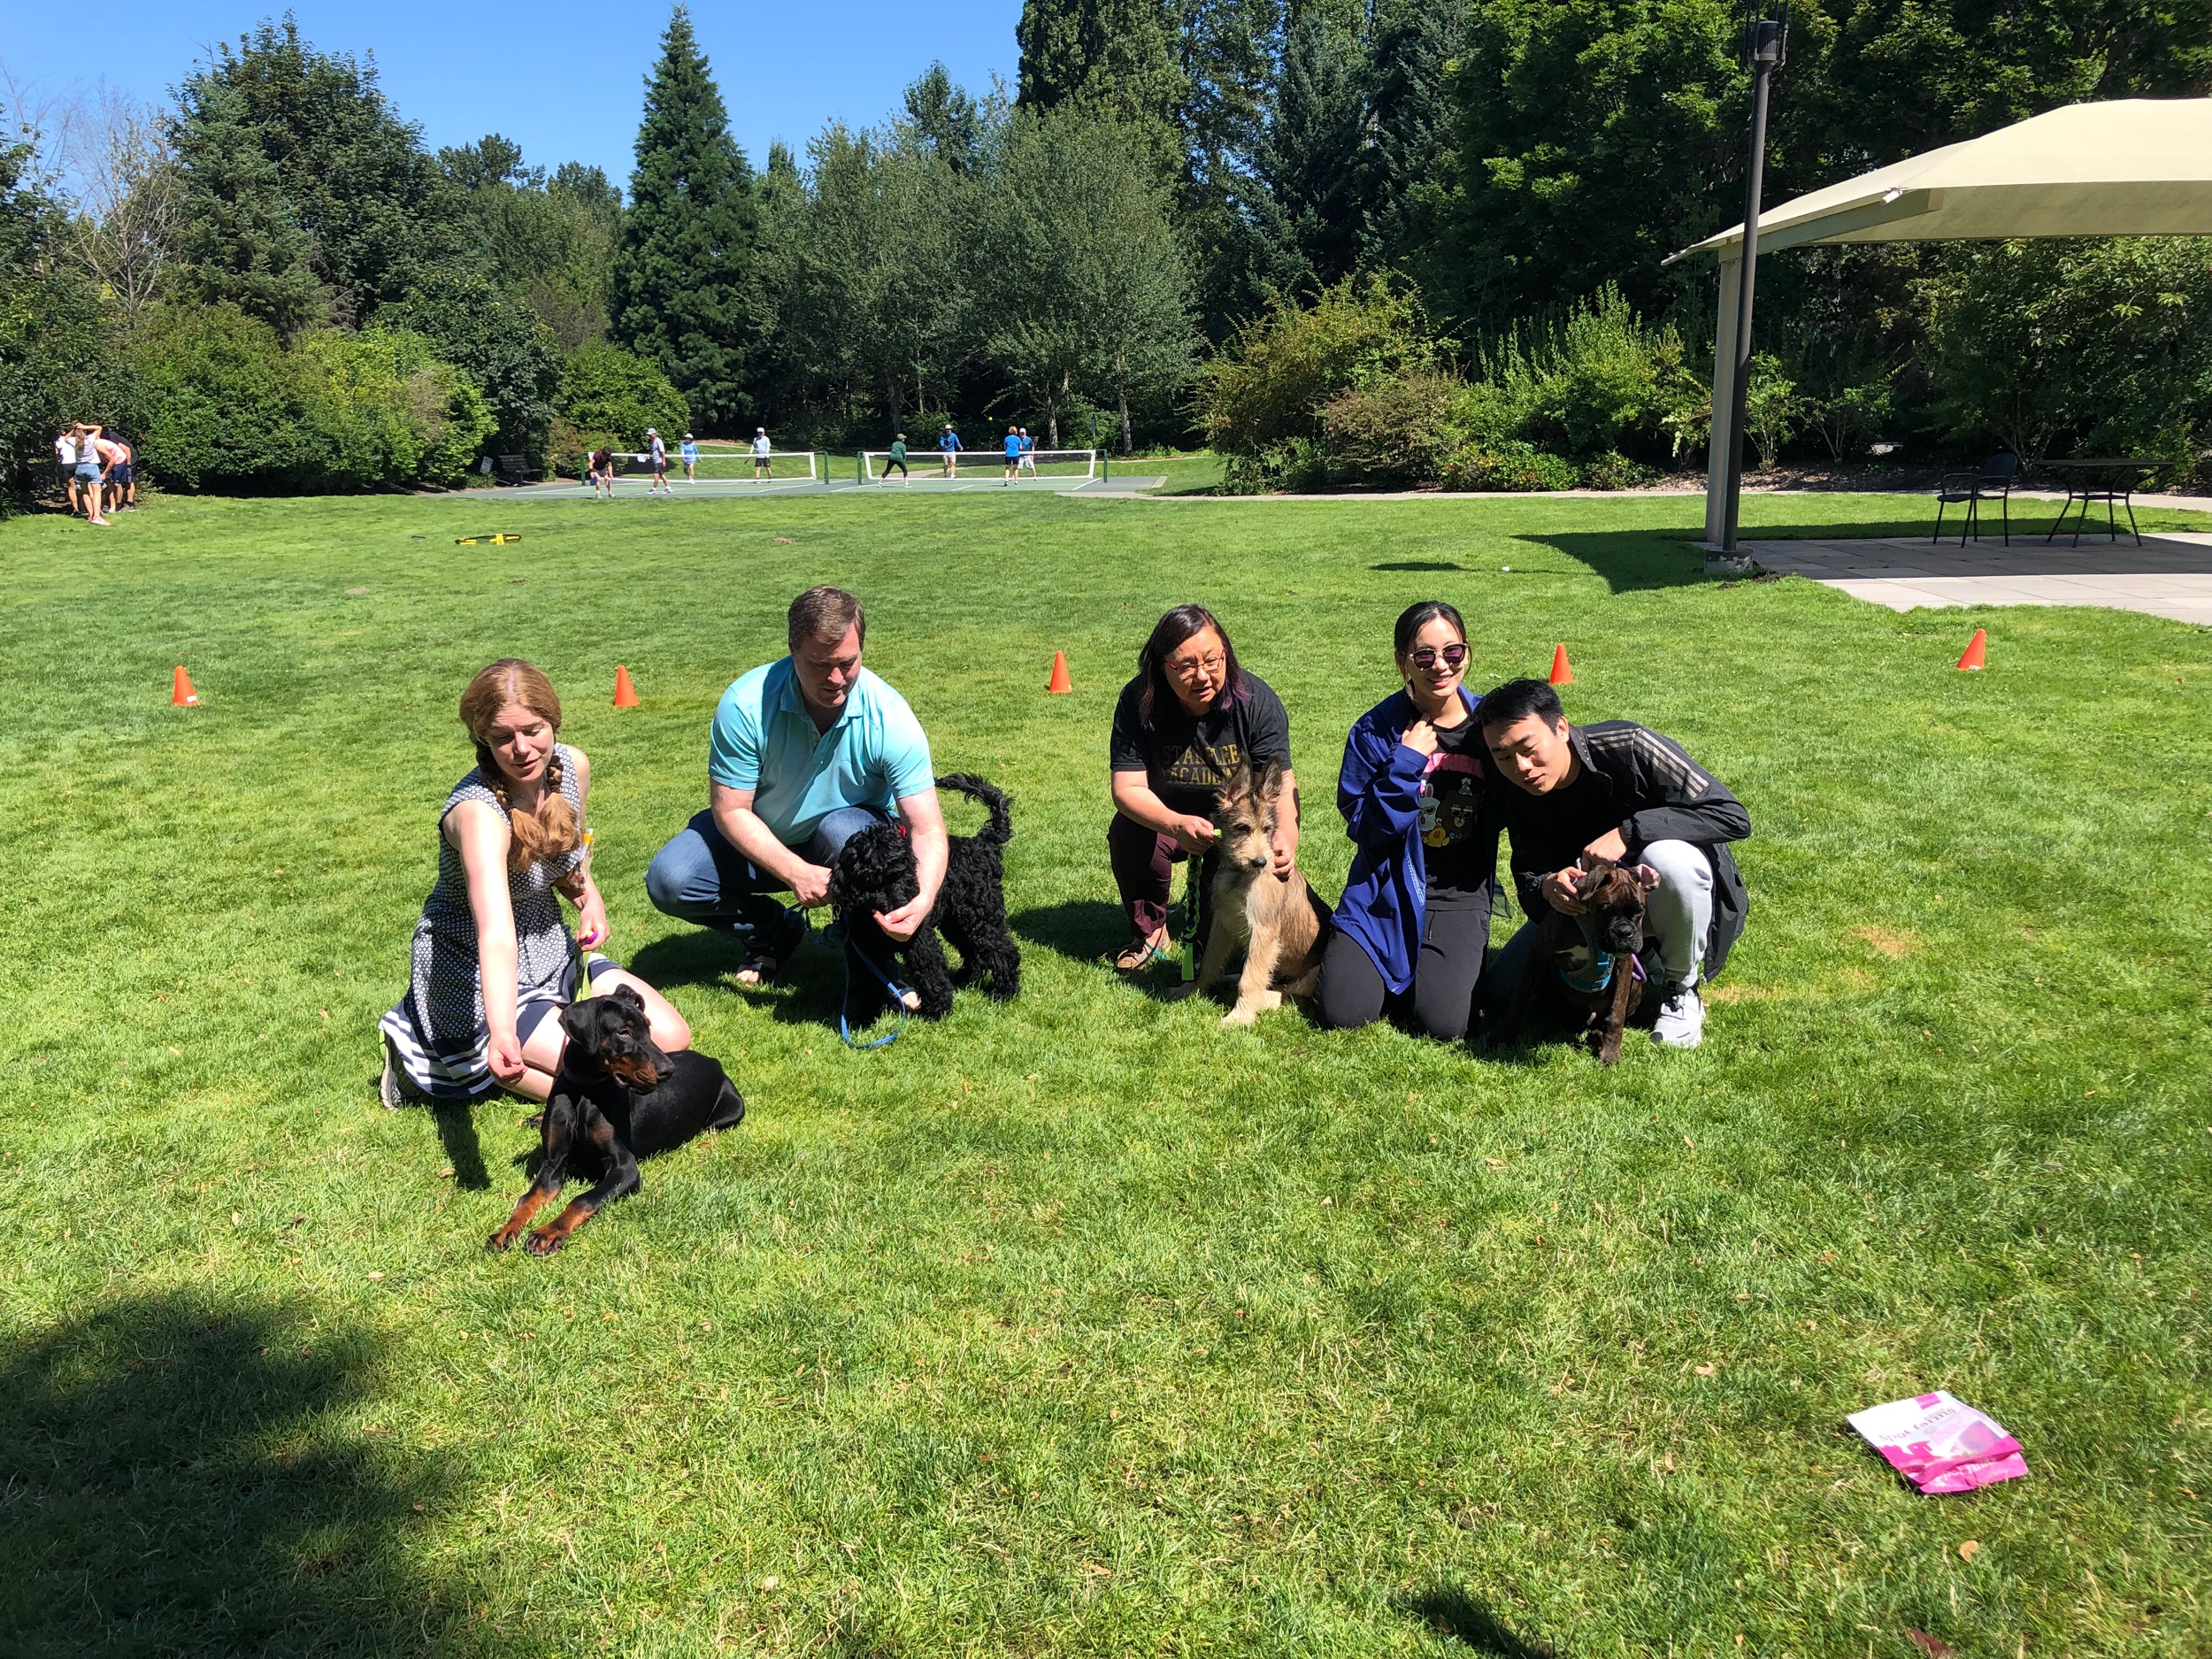 Best dog training classes and puppy socials in Redmond, Bellevue, Kirkland, Sammamish, Medina and surrounding areas in WA.